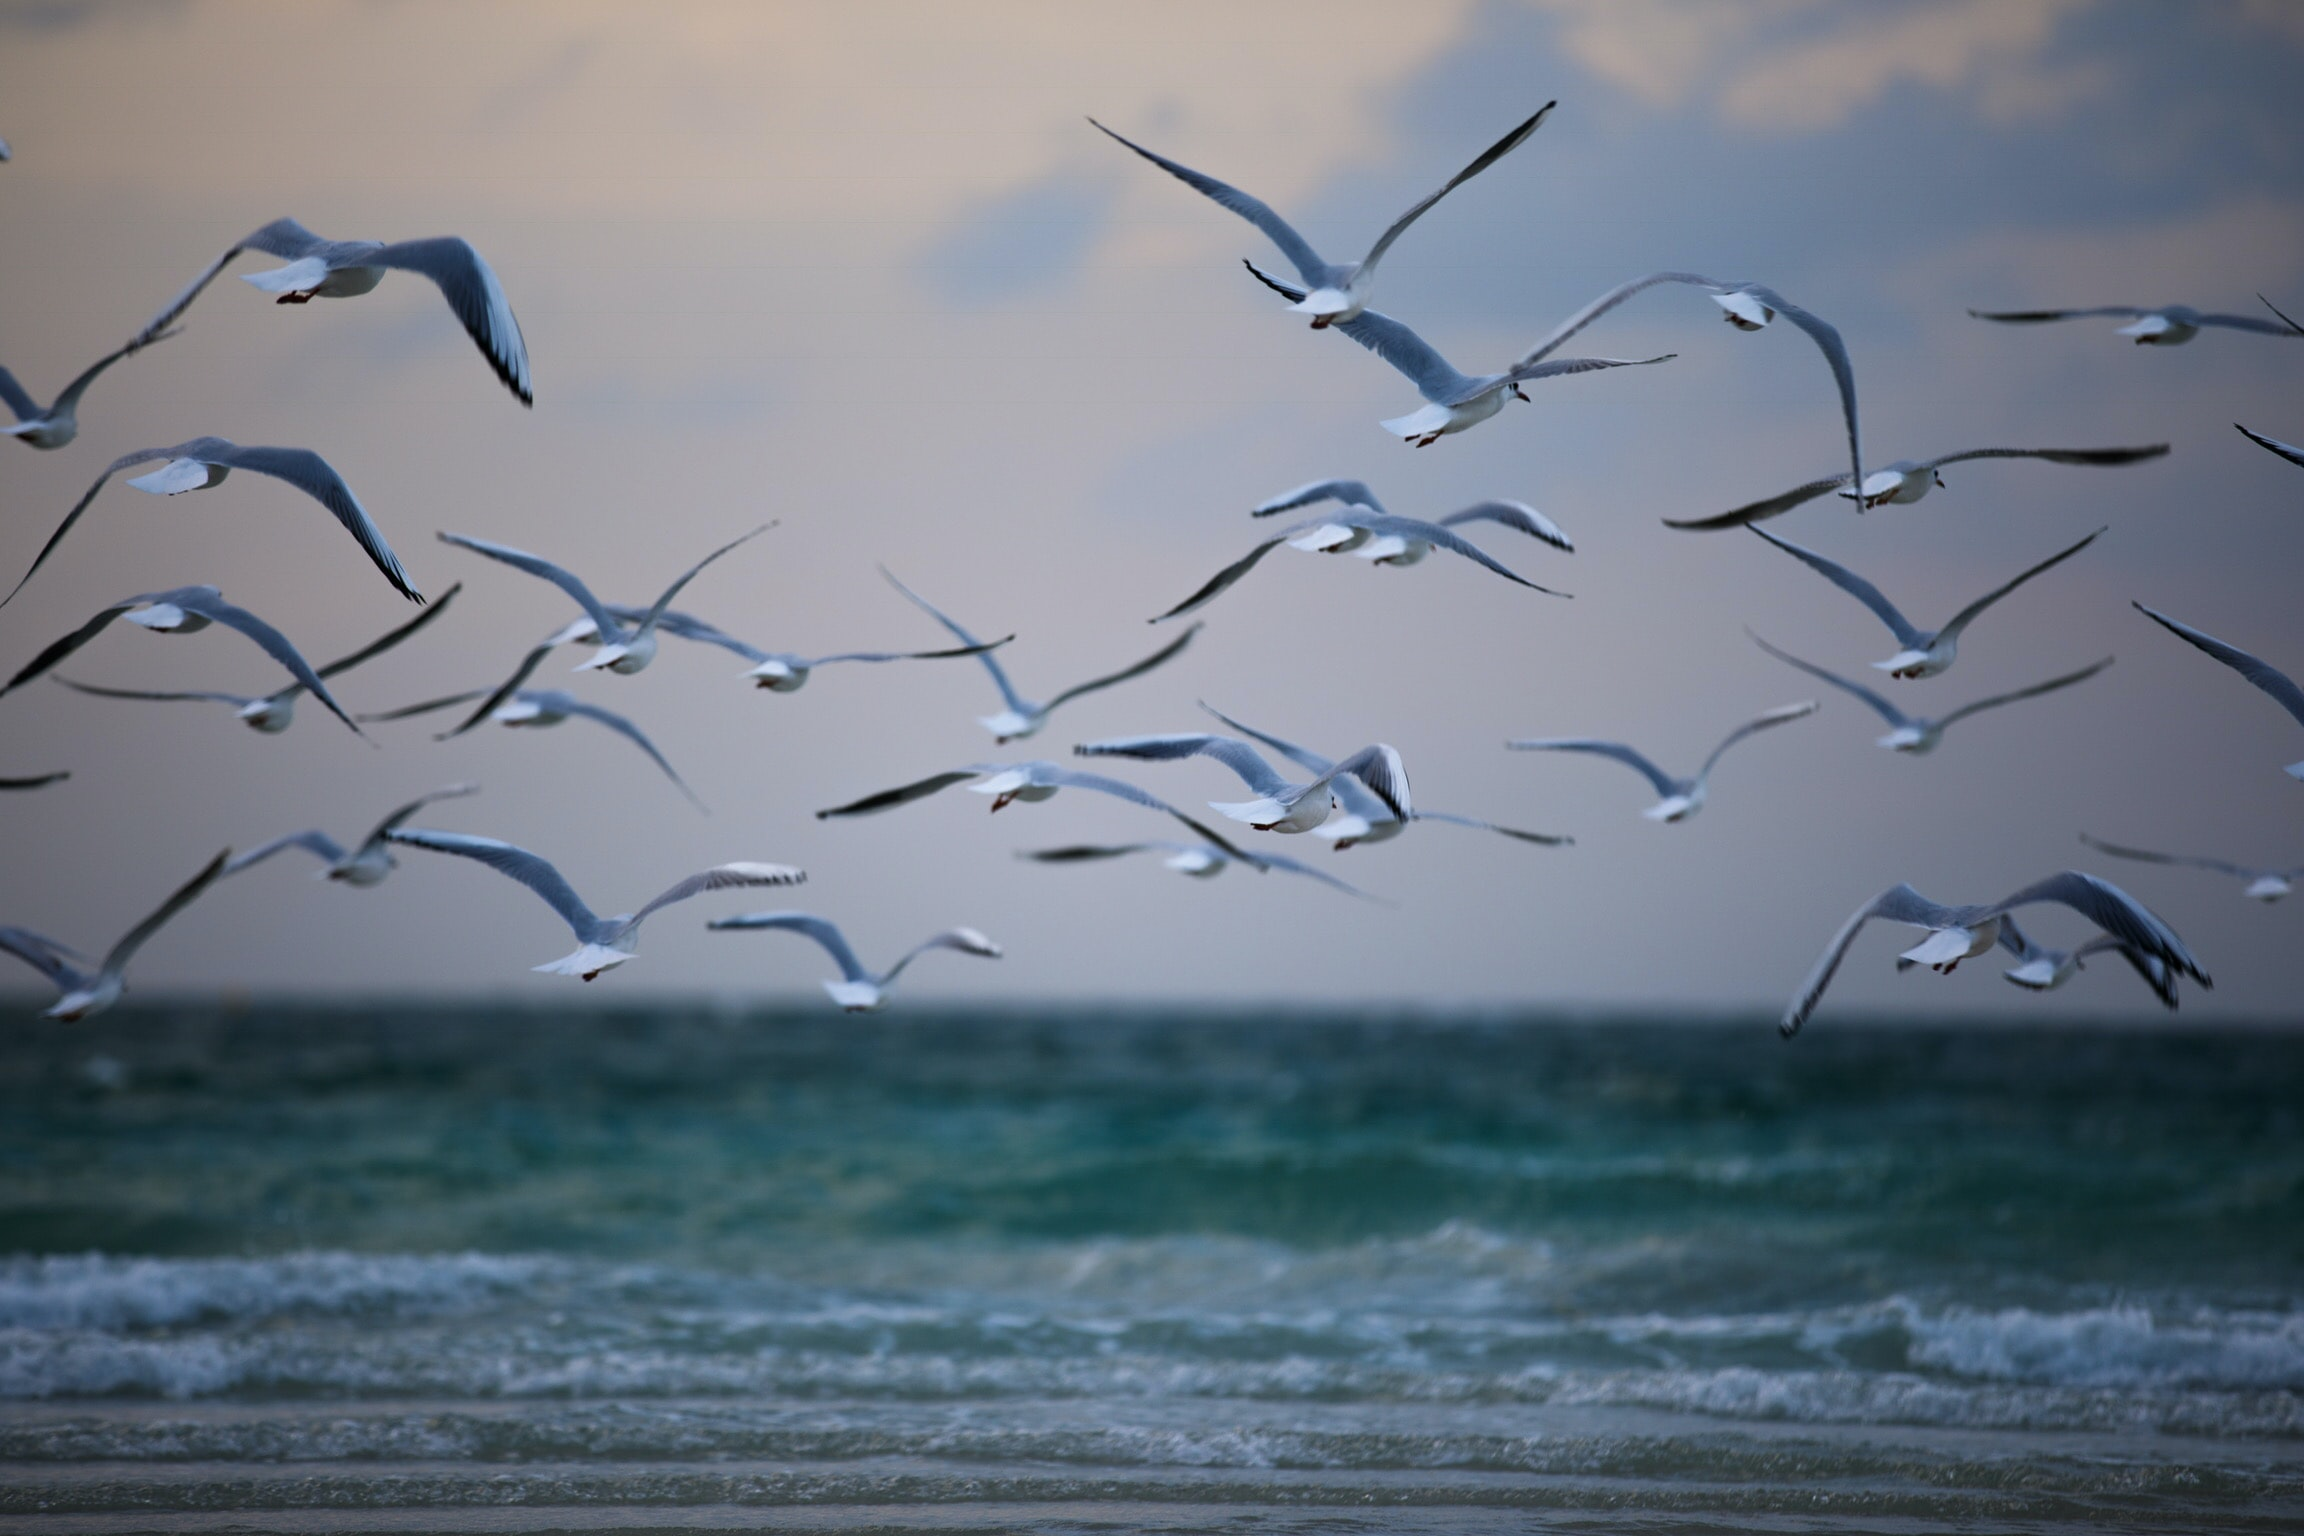 photography of birds flying in air